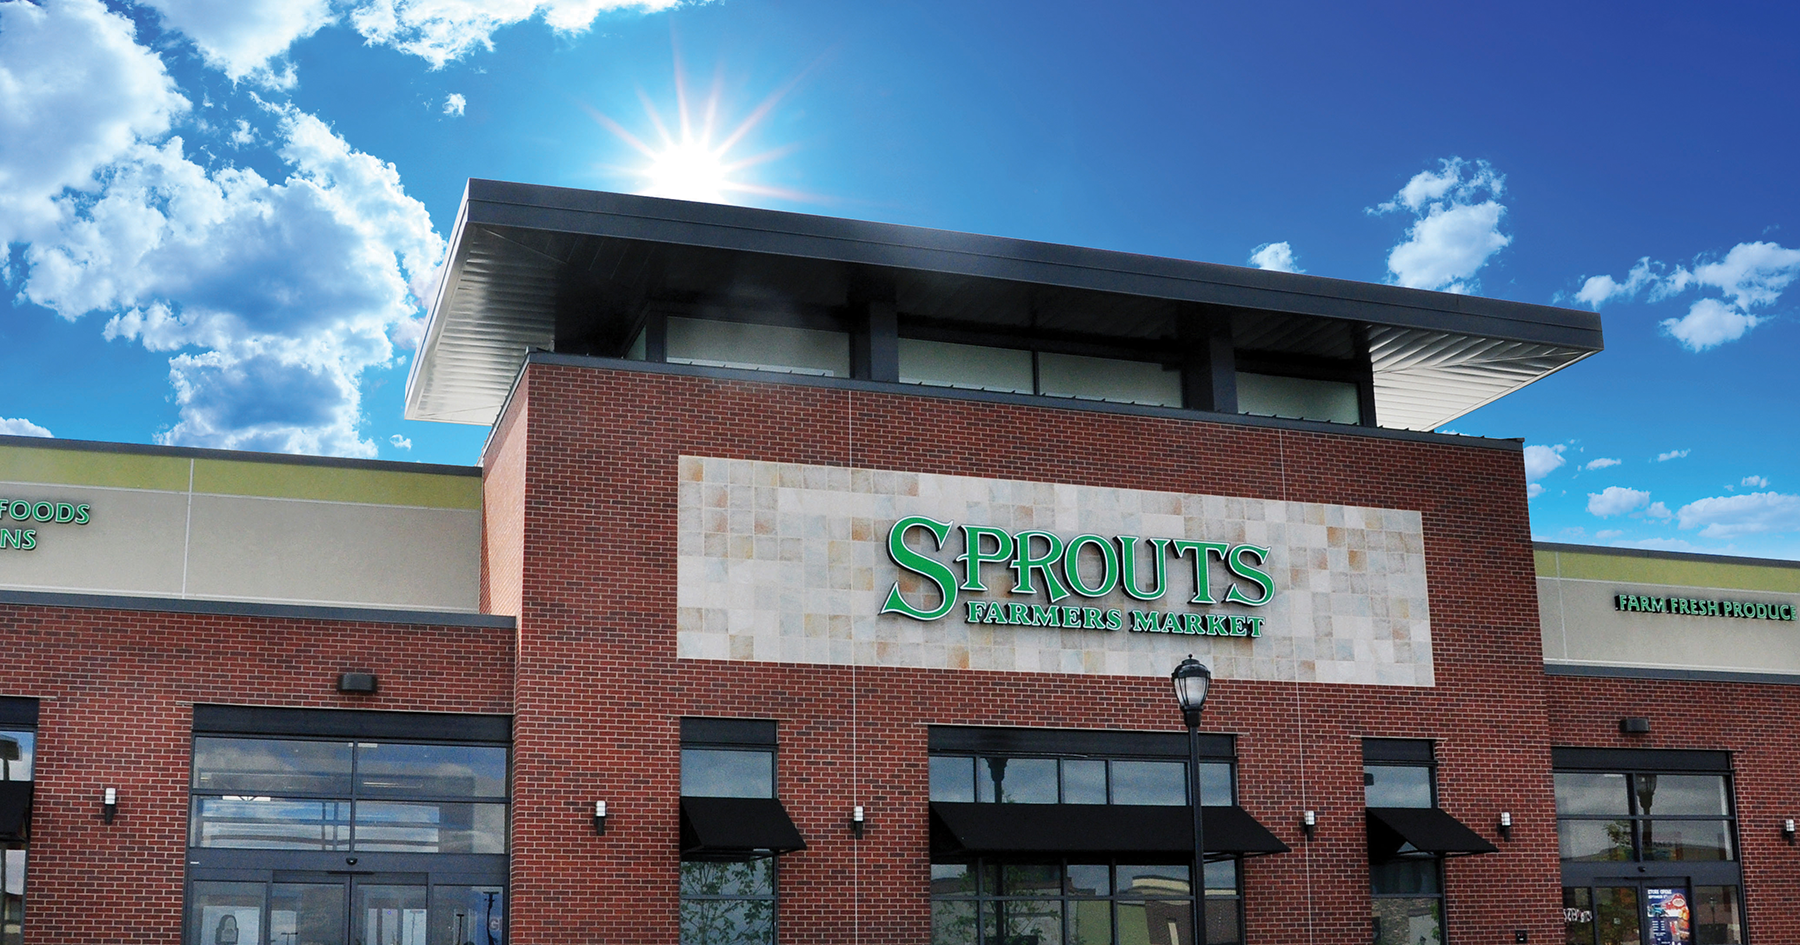 Sprouts to Open 30 New Stores in 2019